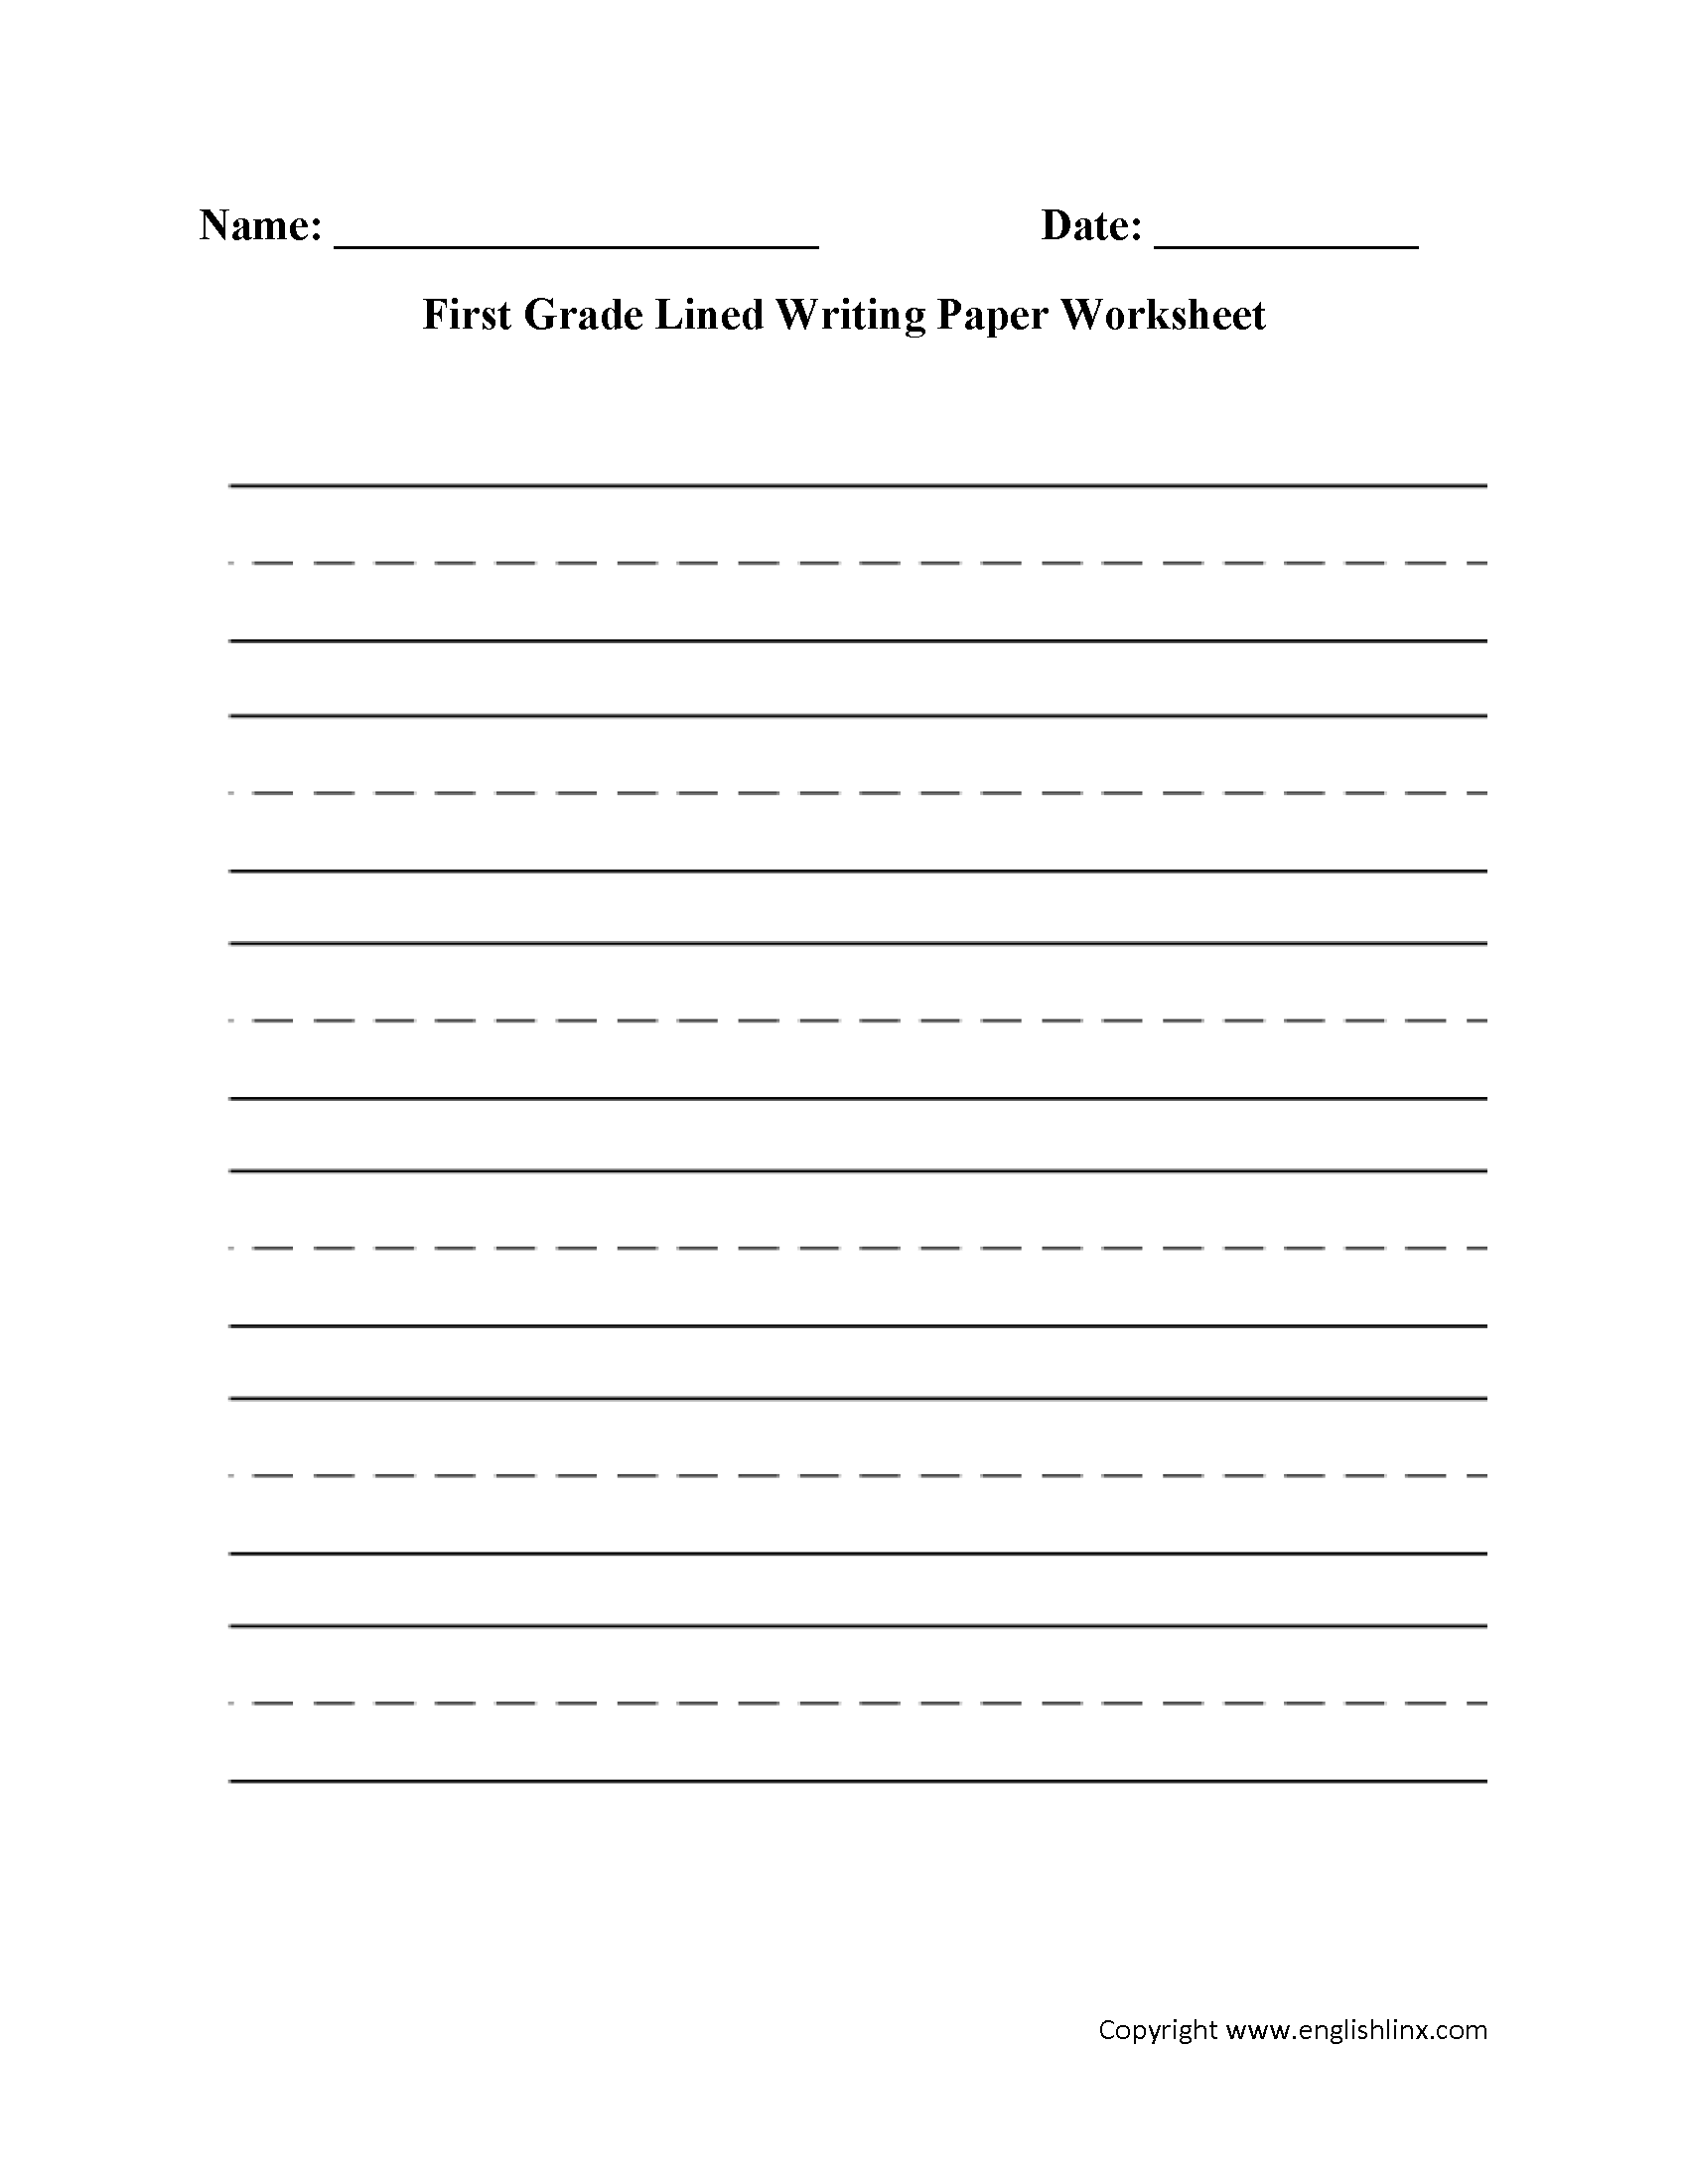 Writing Worksheets | Lined Writing Paper Worksheets